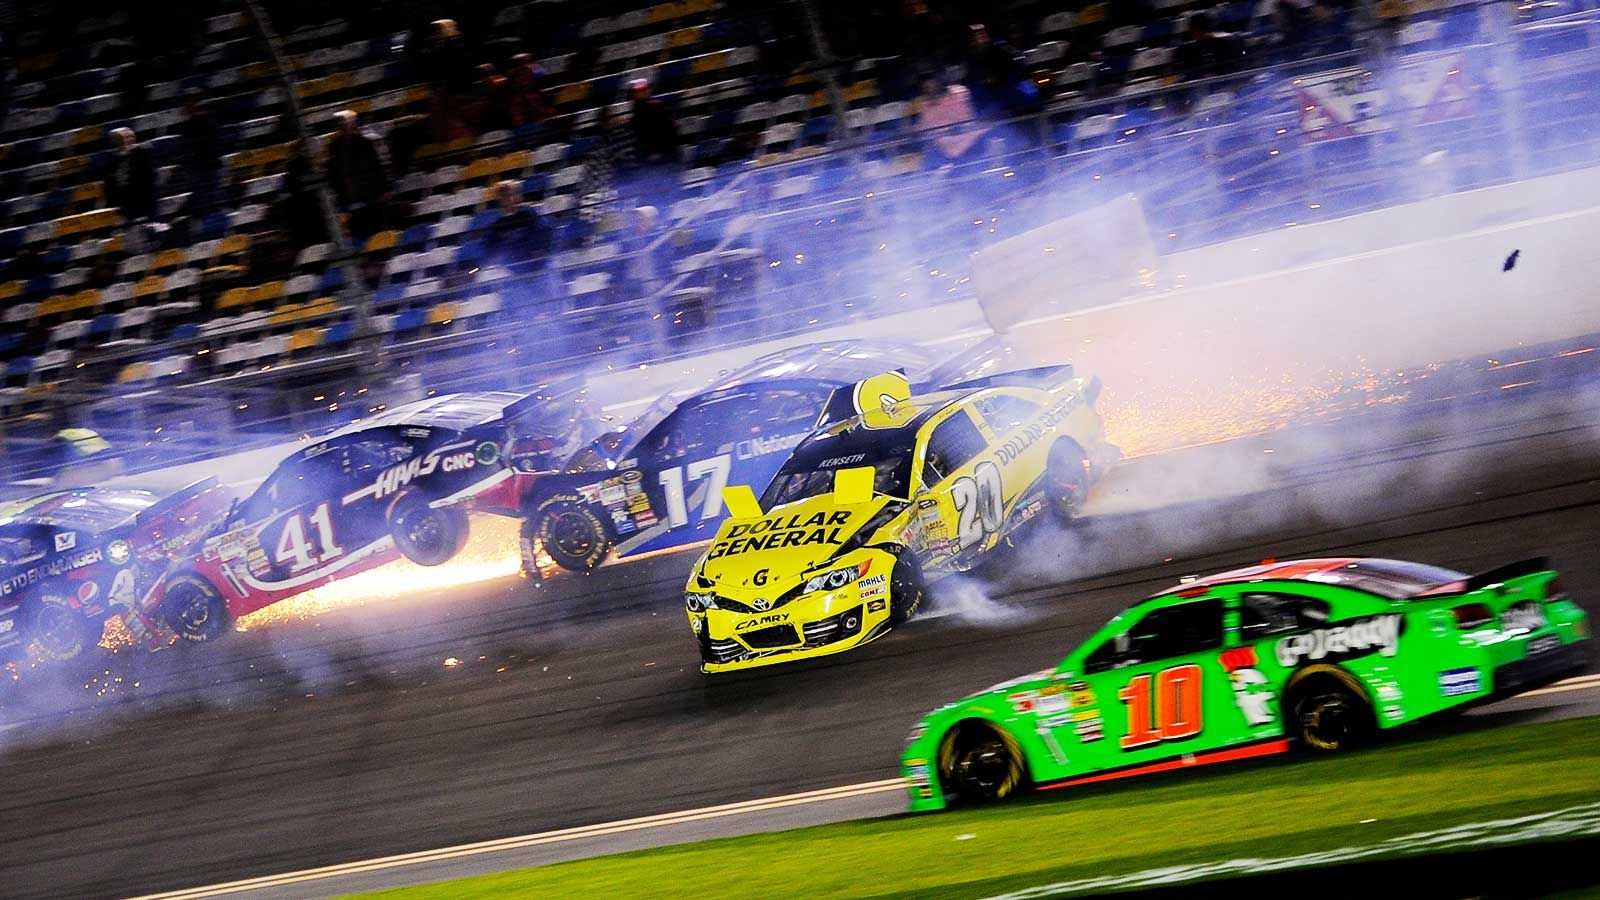 Unlimited excitement The first race of the NASCAR season